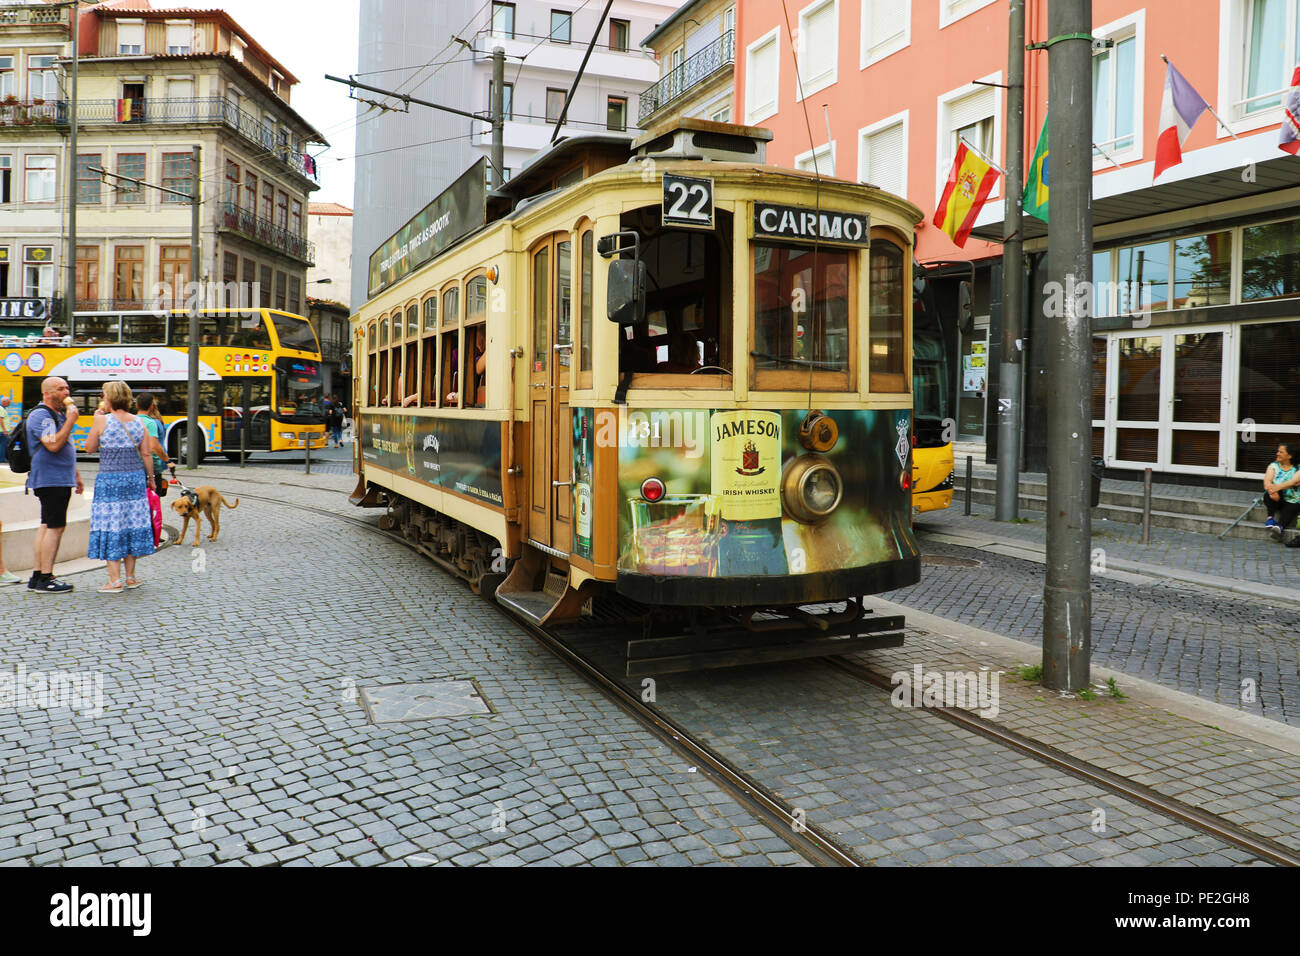 PORTO, PORTUGAL - JUNE 20, 2018: old tram Carmo 22 in downtown of Porto, Portugal Stock Photo